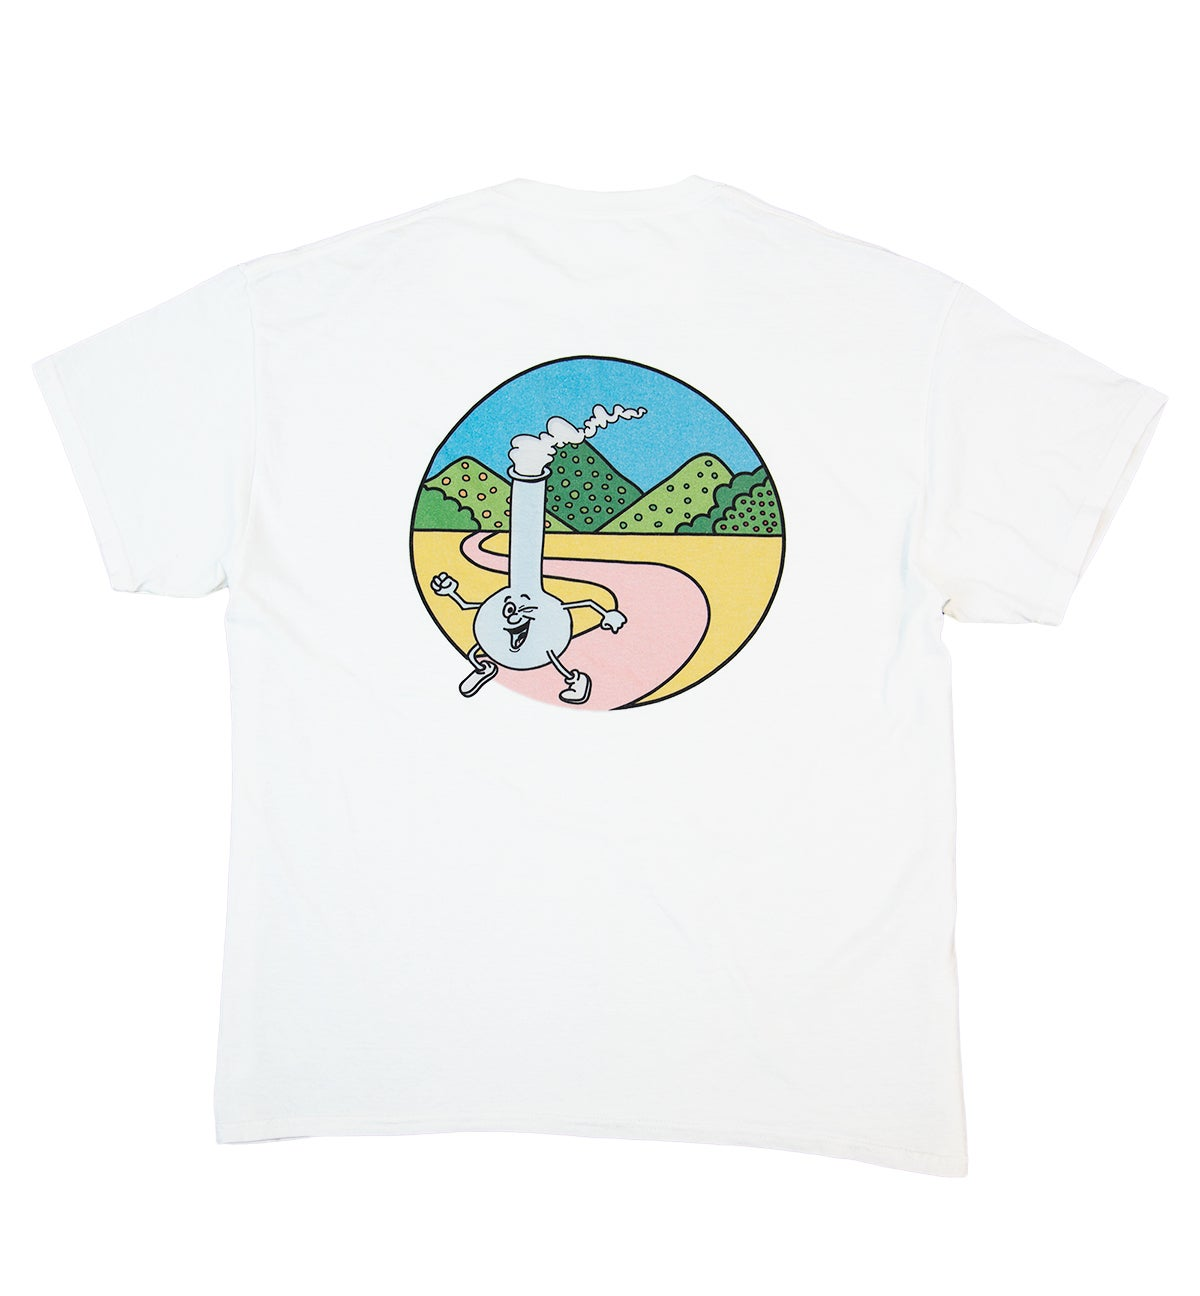 Image of Bong T-shirt